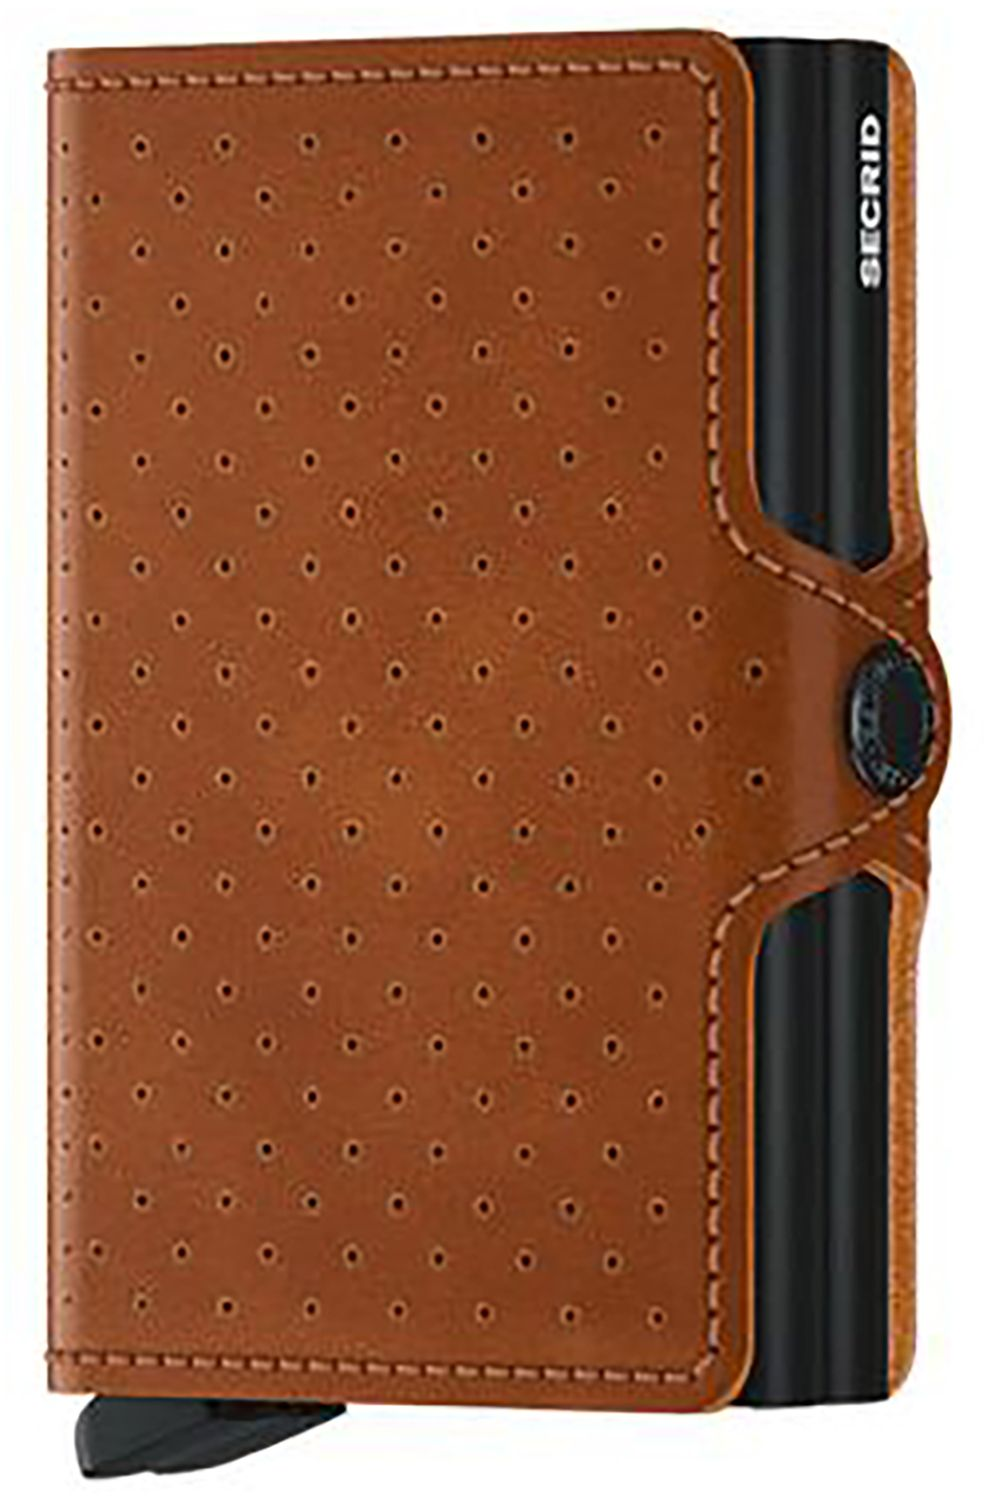 Secrid Leather Wallet TWINWALLET PERFORATED Cognac